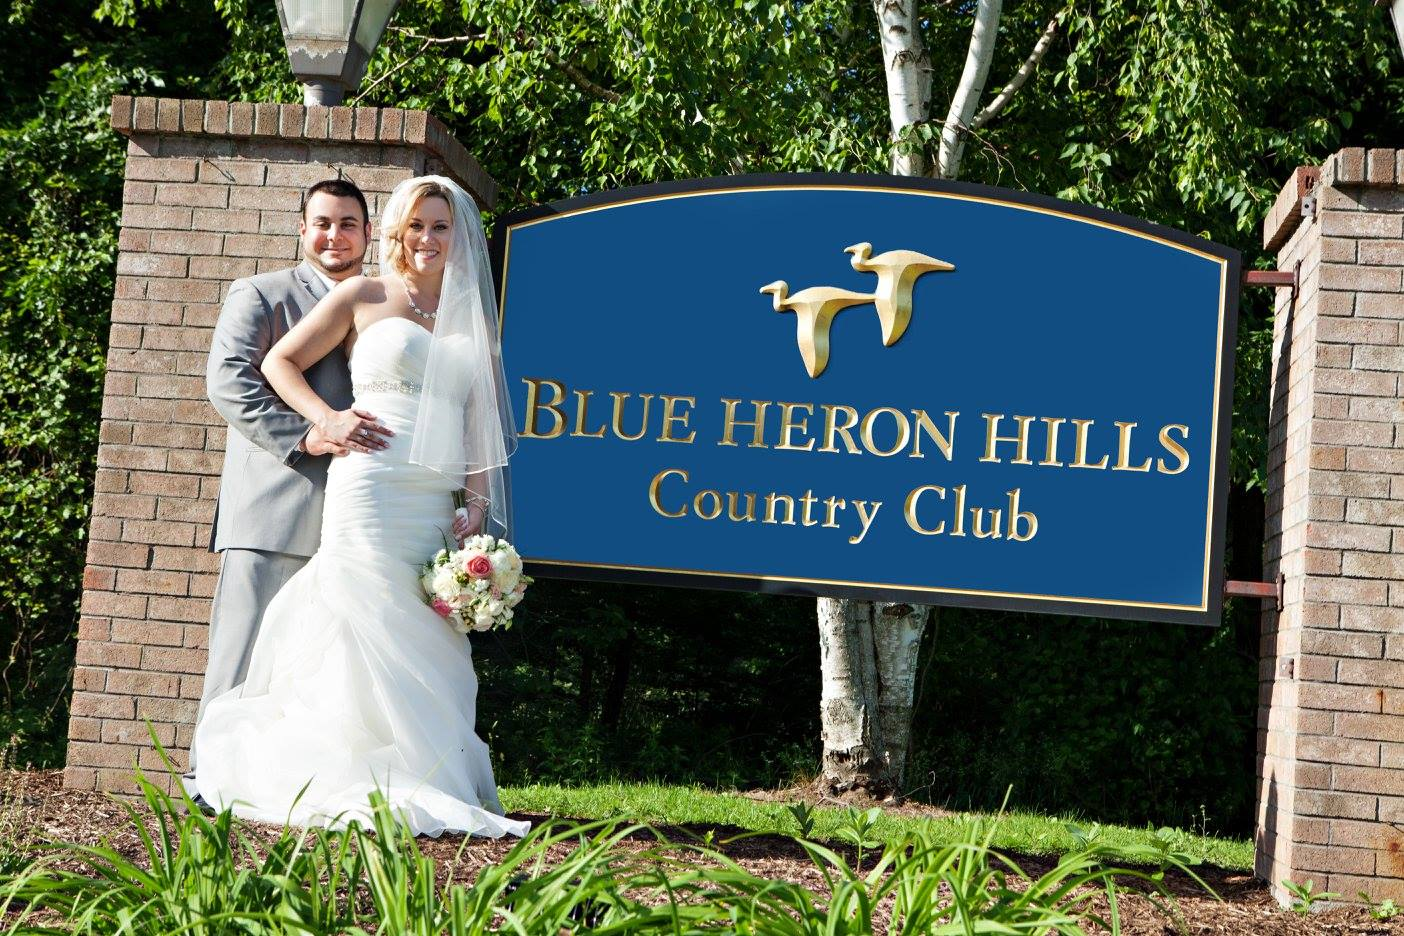 Weddings & Events Photo Gallery - The Golf Club at Blue Heron Hills